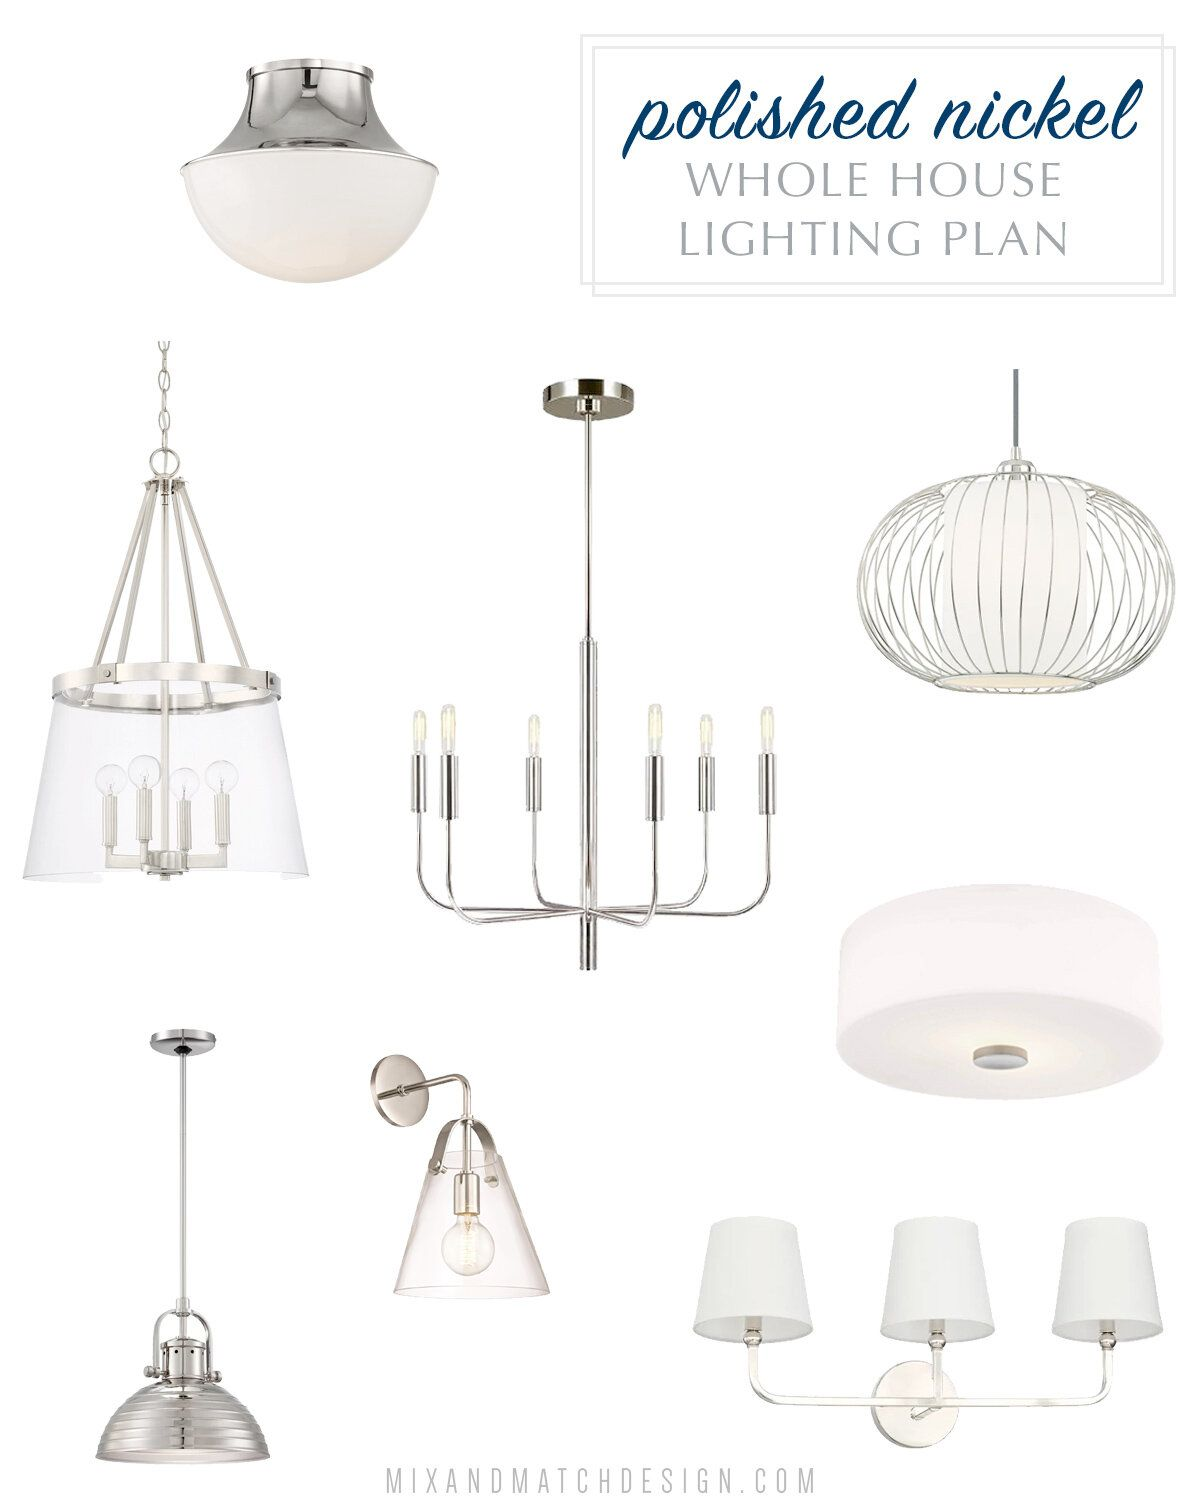 How To Choose Coordinating Light Fixtures For Your Home Light